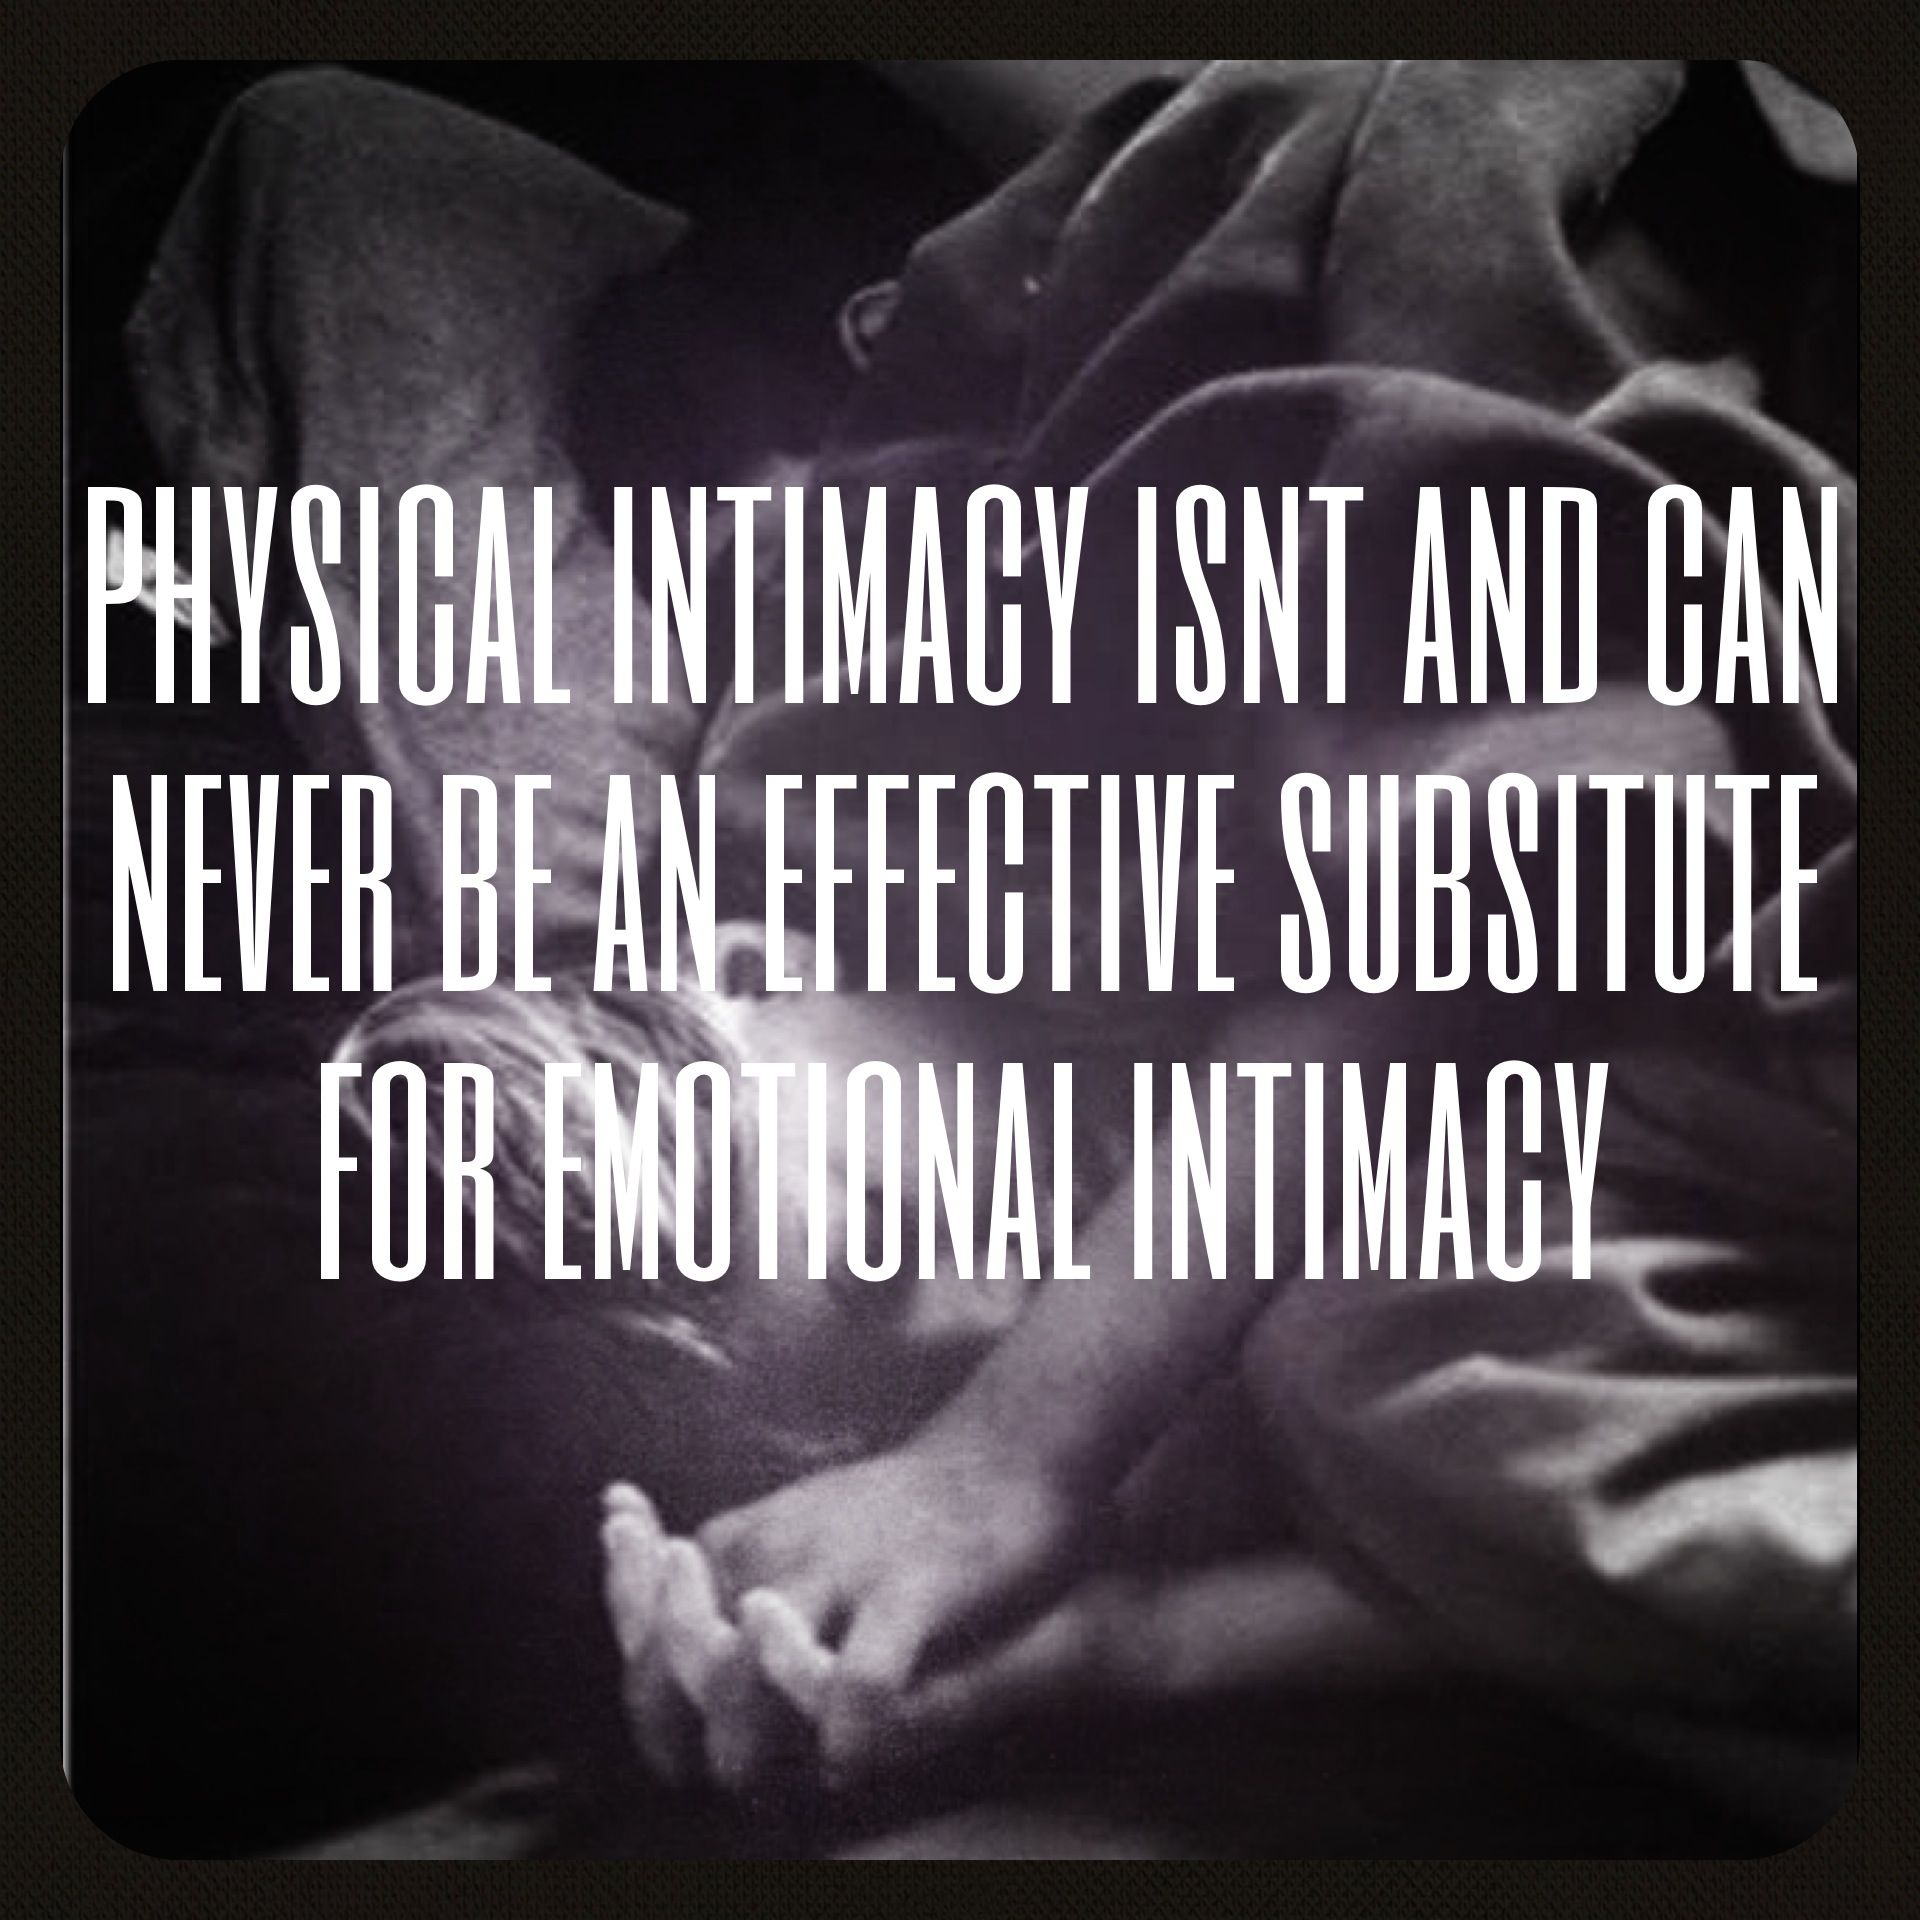 Physical intimacy isn't and can never be an effective